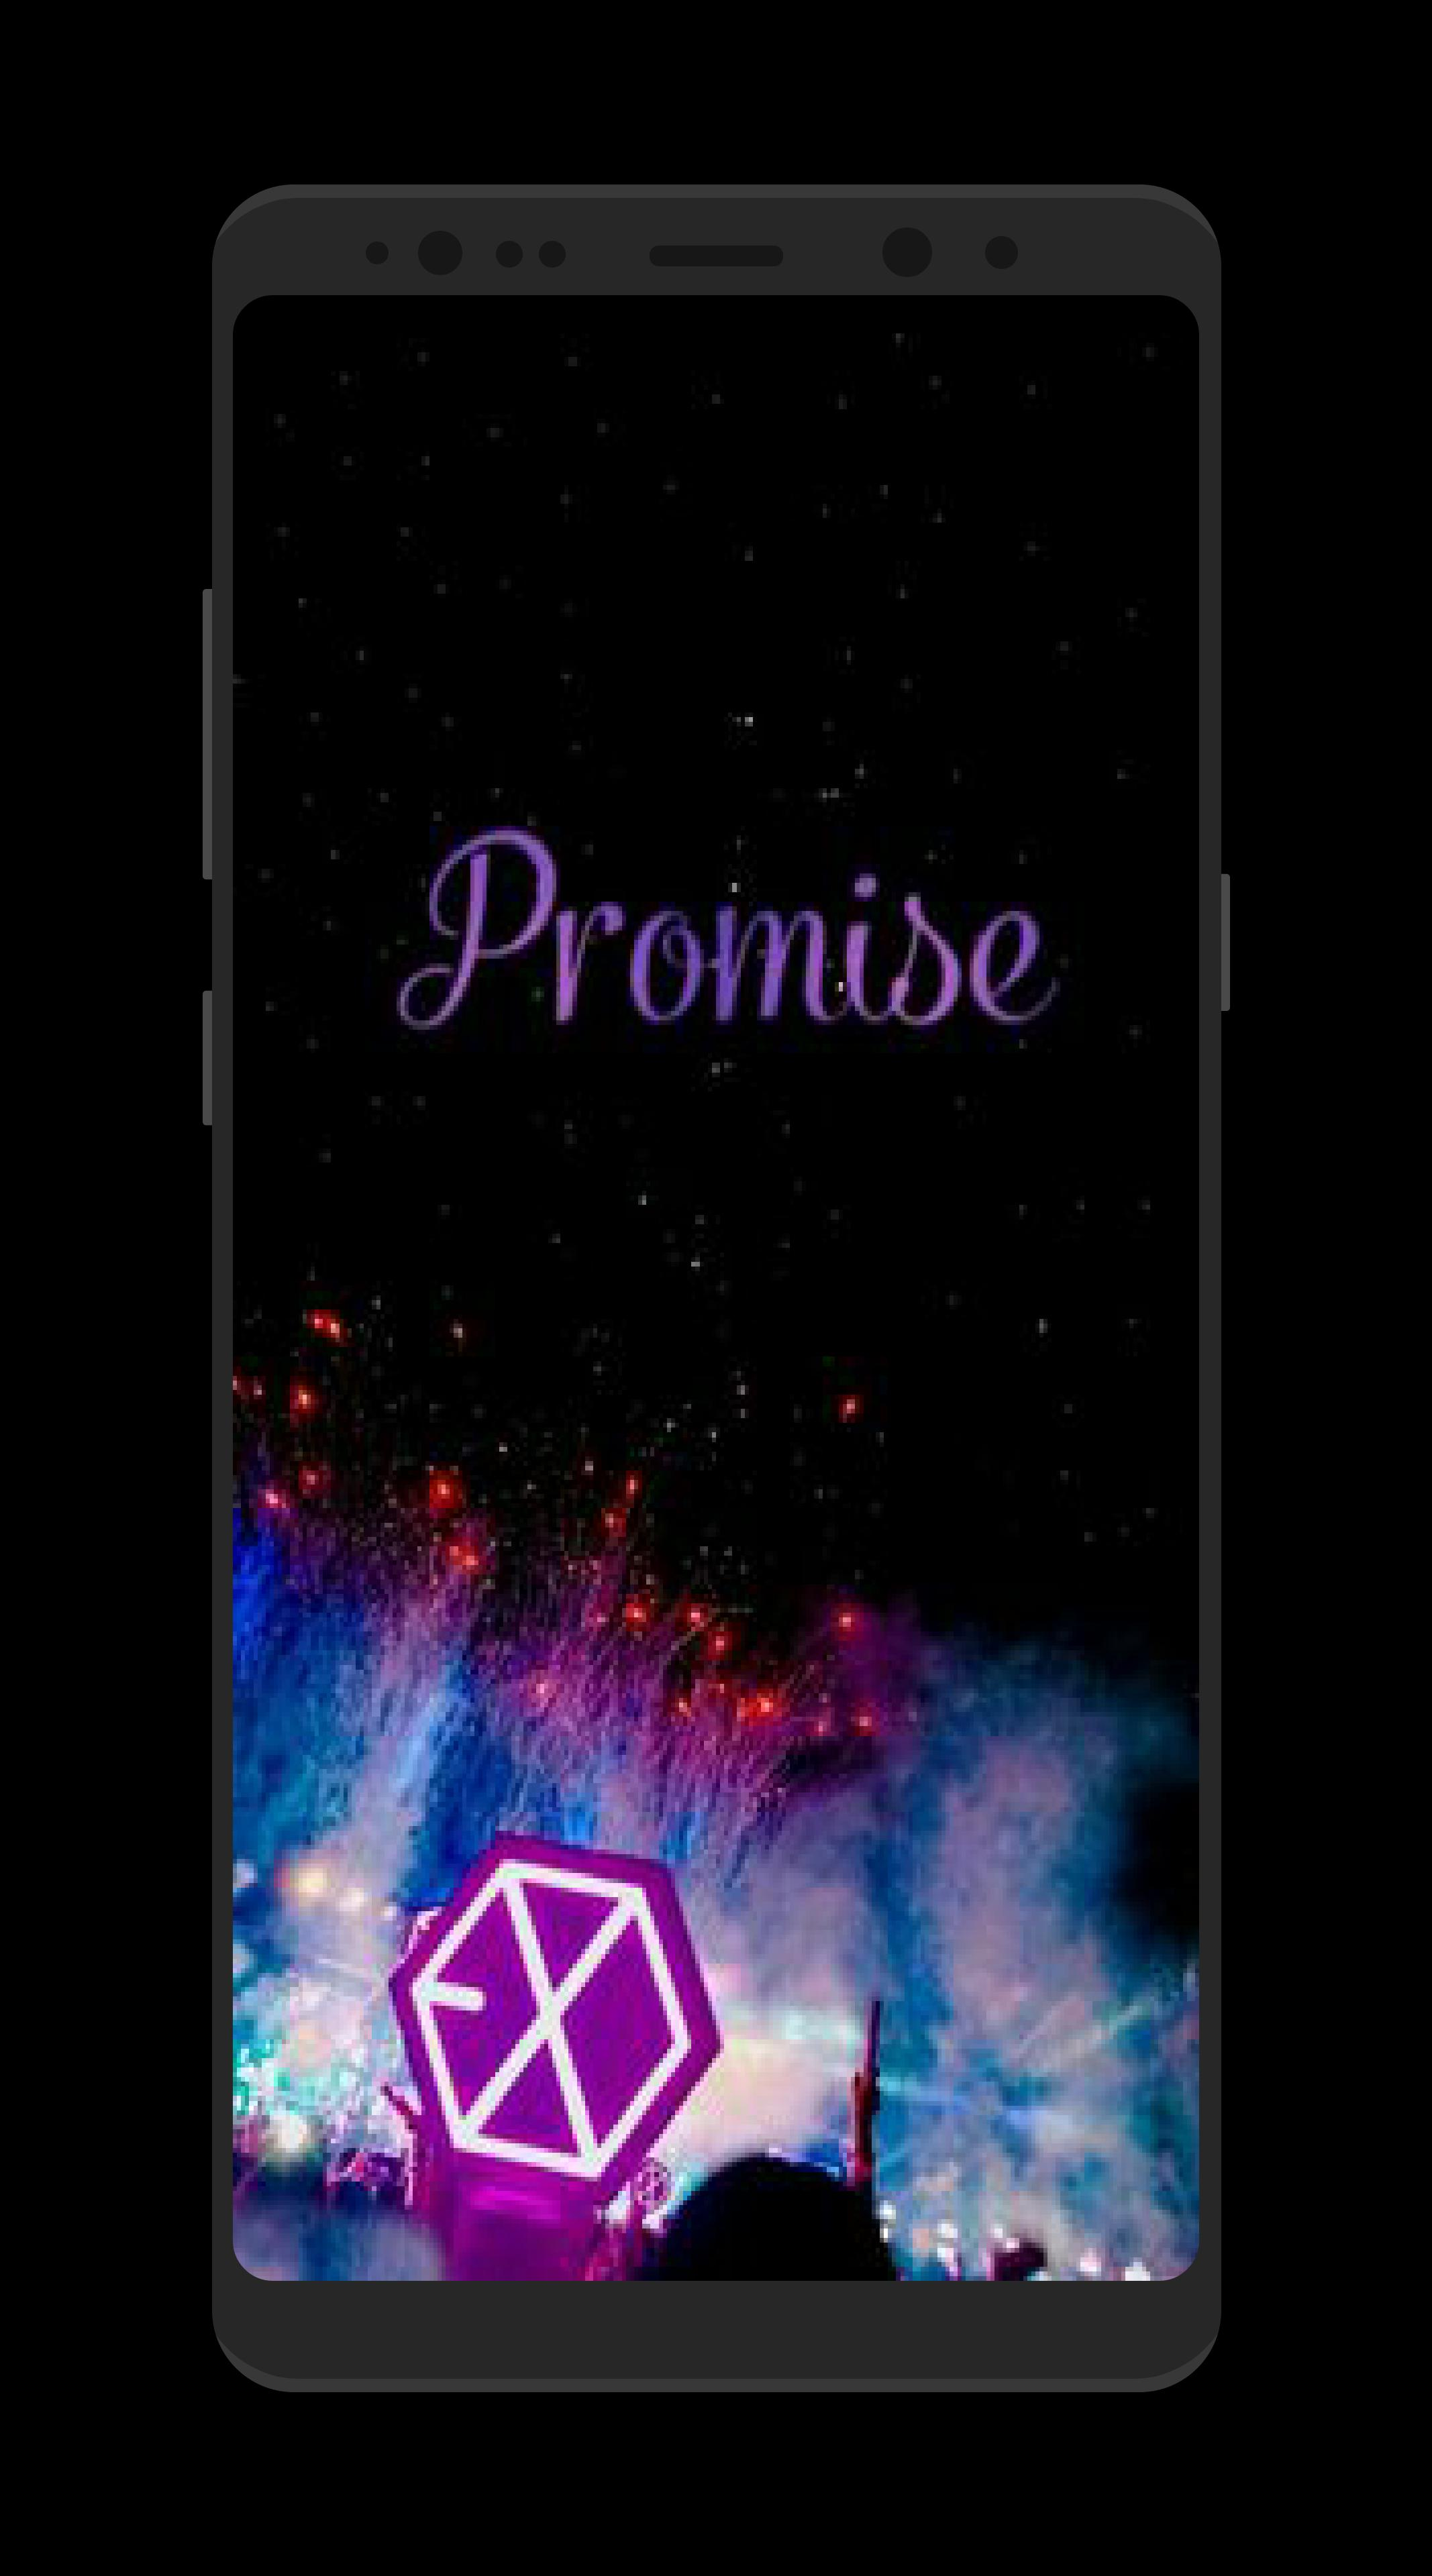 Exo Wallpaper Hd 2018 For Android Apk Download